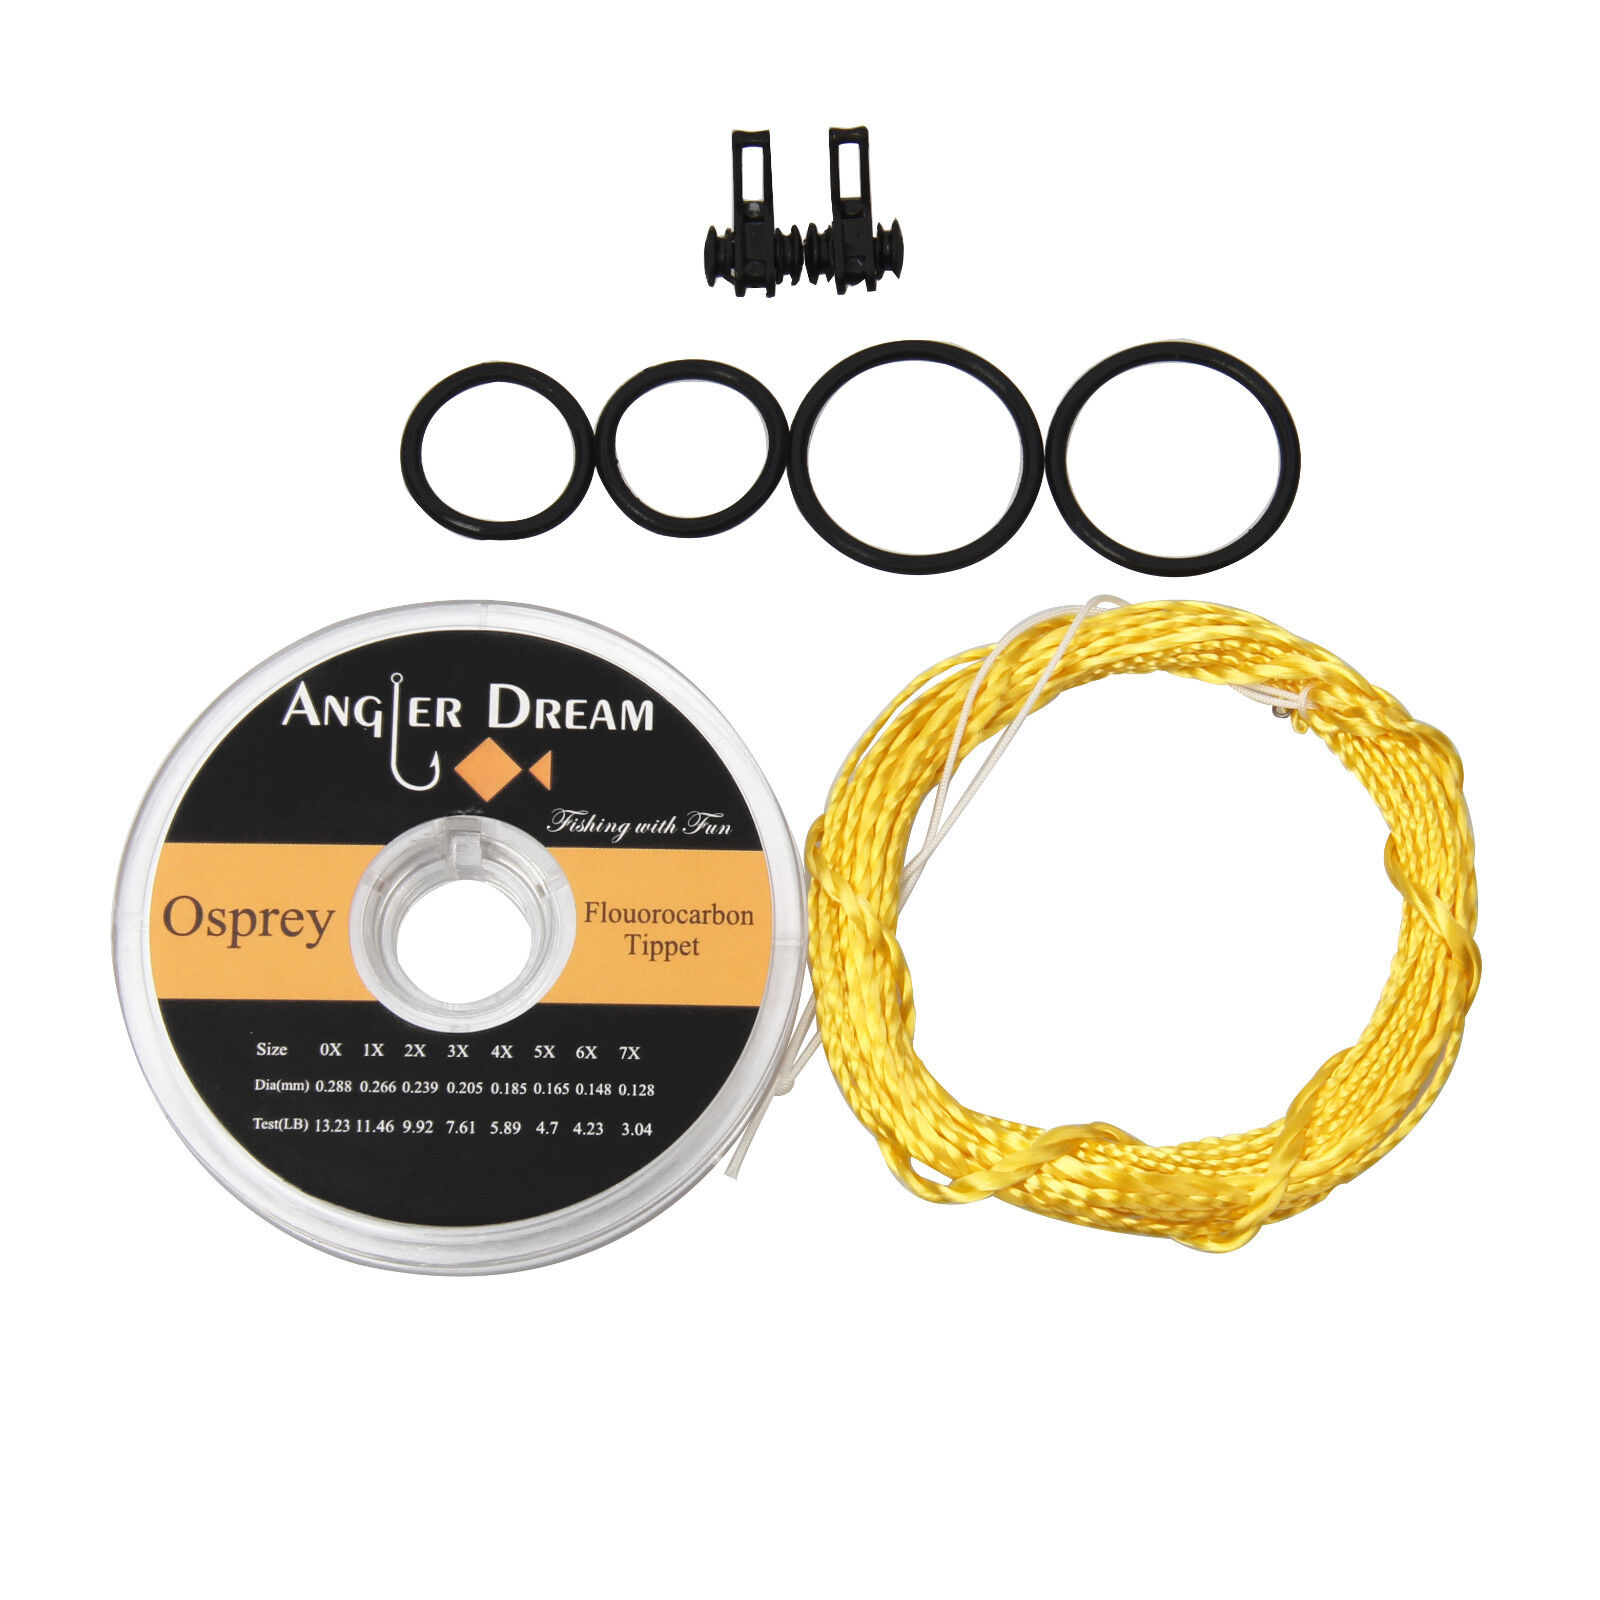 Fishing Line & Leaders Furled Leader Line Fly Fishing Fluorocarbon Tippet Hook Keeper*Line VGFH Fishing Equipment & Supplies